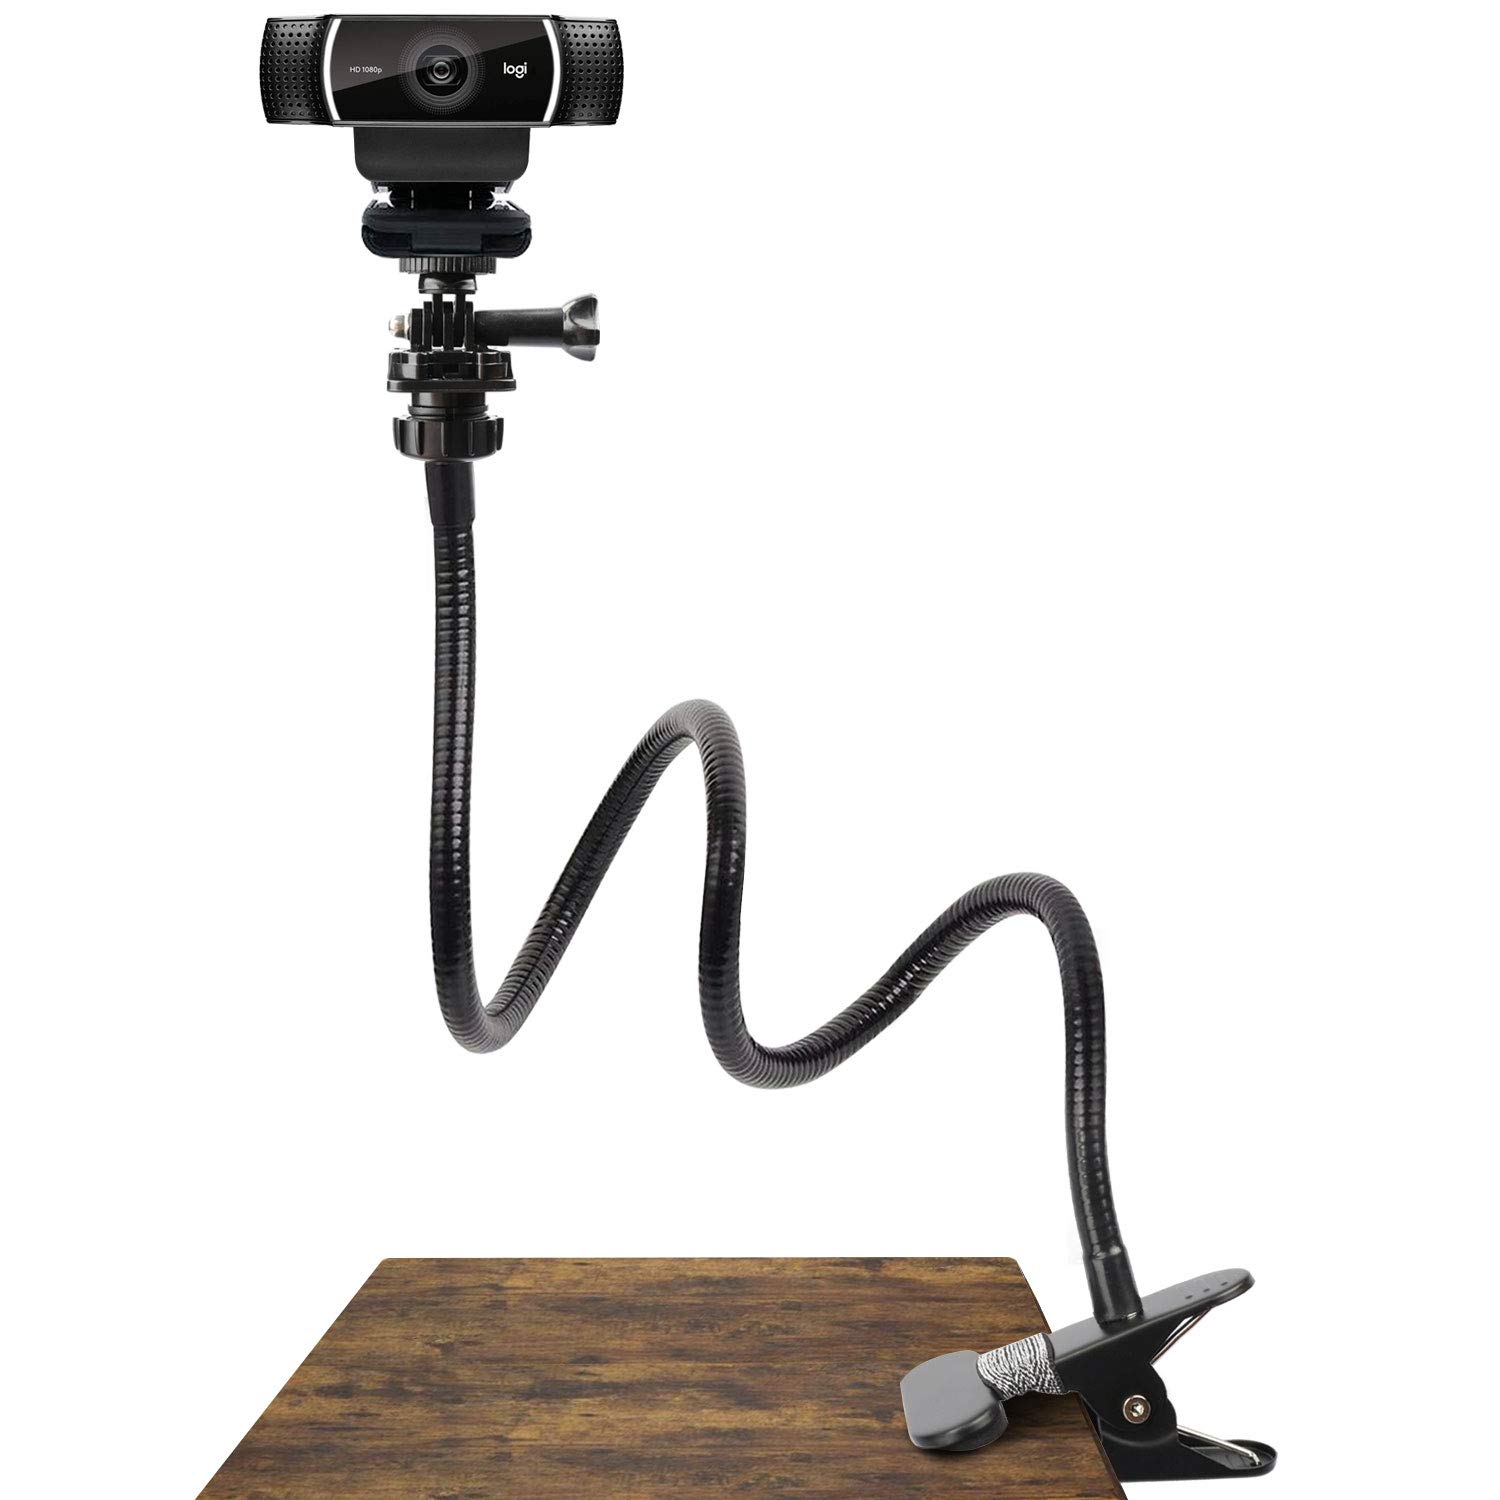 25 Inch Webcam Stand - Flexible Desk Mount Clamp Gooseneck Stand for Logitech Webcam C930e,C930,C920, C922x,C922, Brio 4K, C925e,C615 by Pipishell by Pipishell